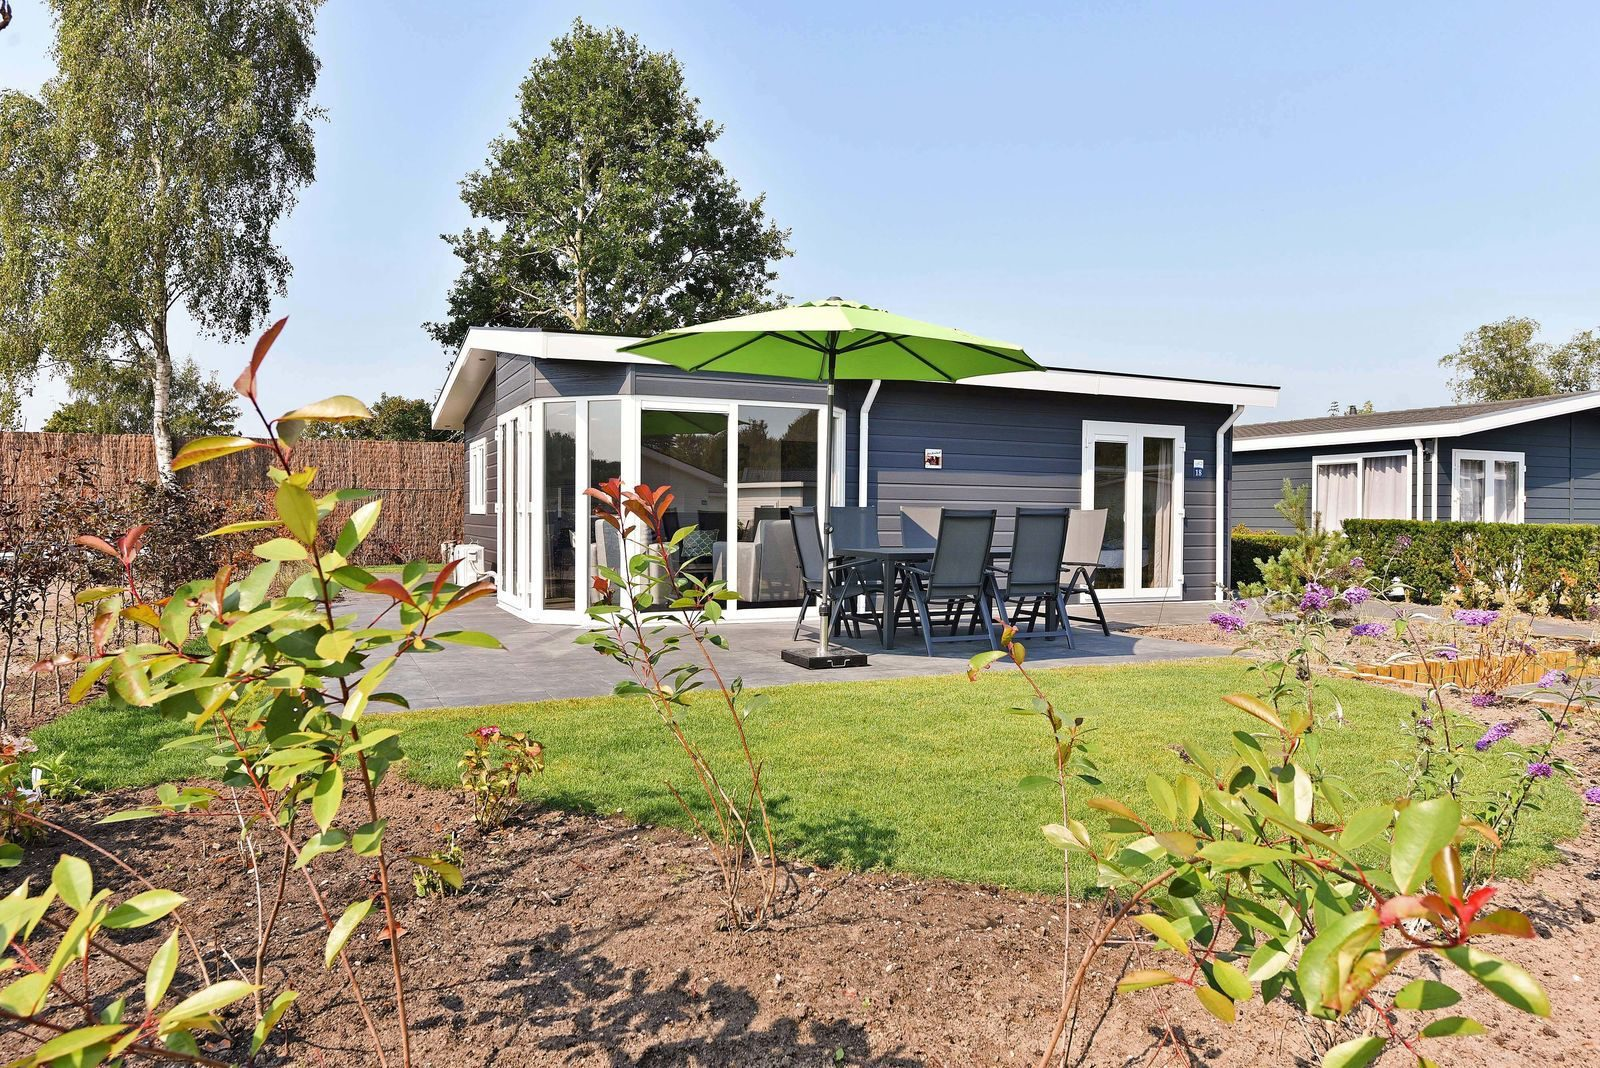 Holiday home for disabled people